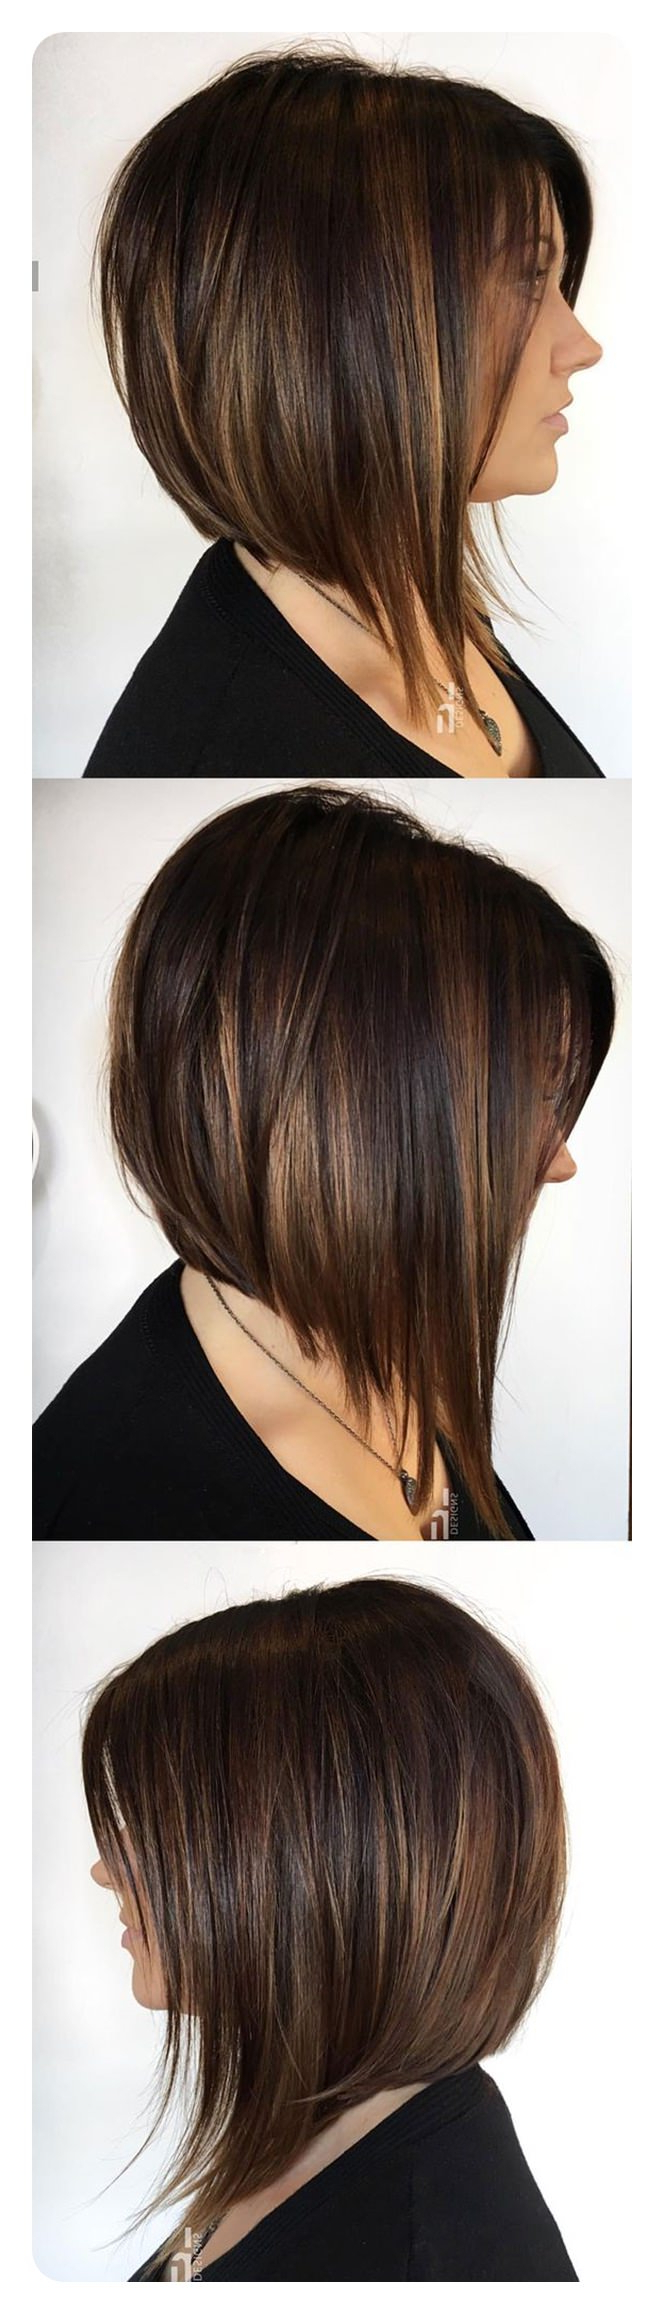 The Bob Cut Craze: 88 Ways To Vamp Your Inverted Bob Regarding Trendy Razored Shaggy Chocolate And Caramel Bob Hairstyles (View 17 of 20)